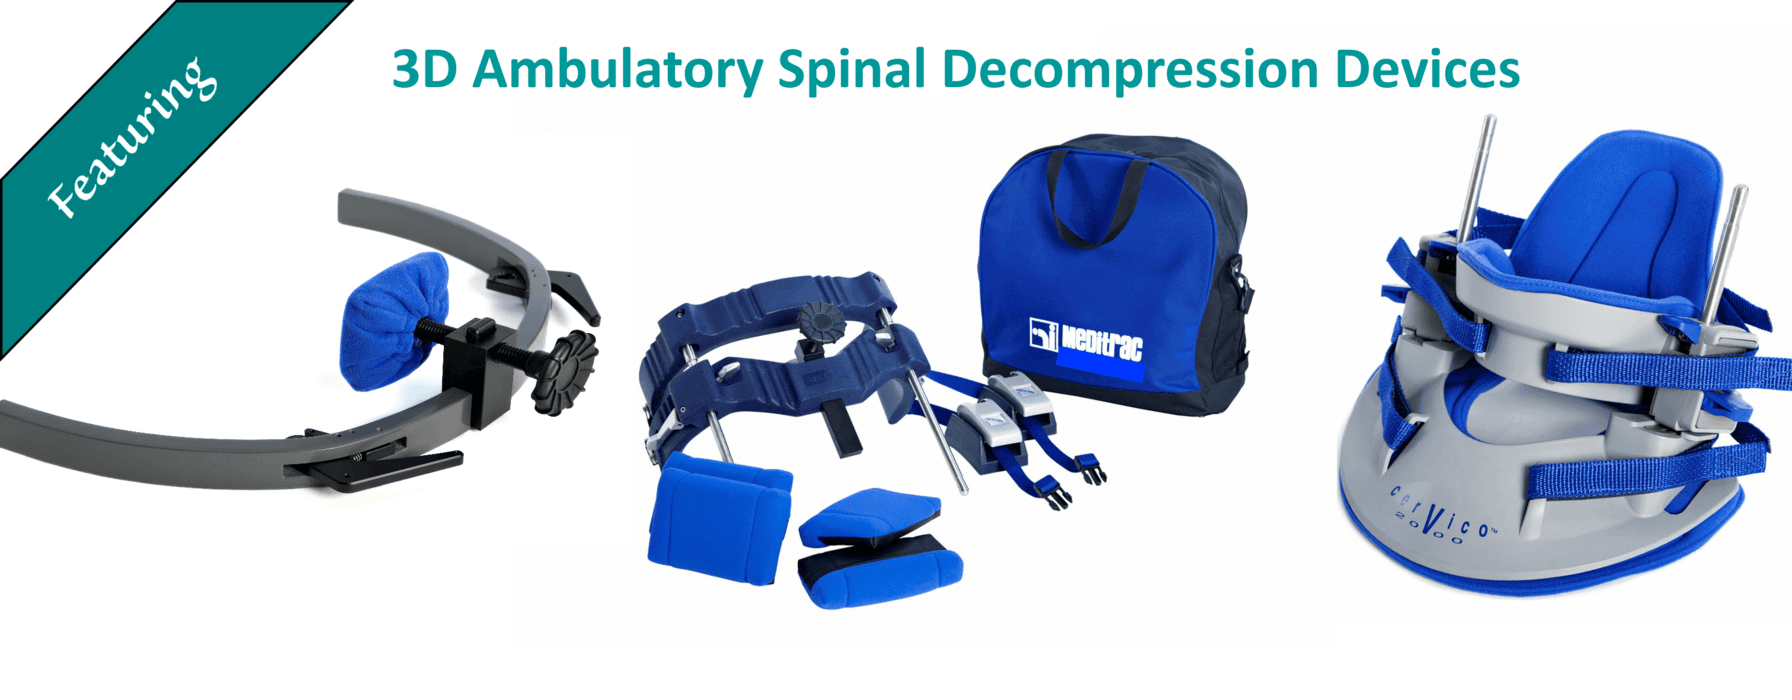 Meditrac 3D Ambulatory Spinal Decompression Devices, including the Vertetrac, Cervico 2000 & DBS Scoliosis Rail Attachment, for neck & lower back pain relief Vertetrac Cervico 2000 avoid spinal surgery